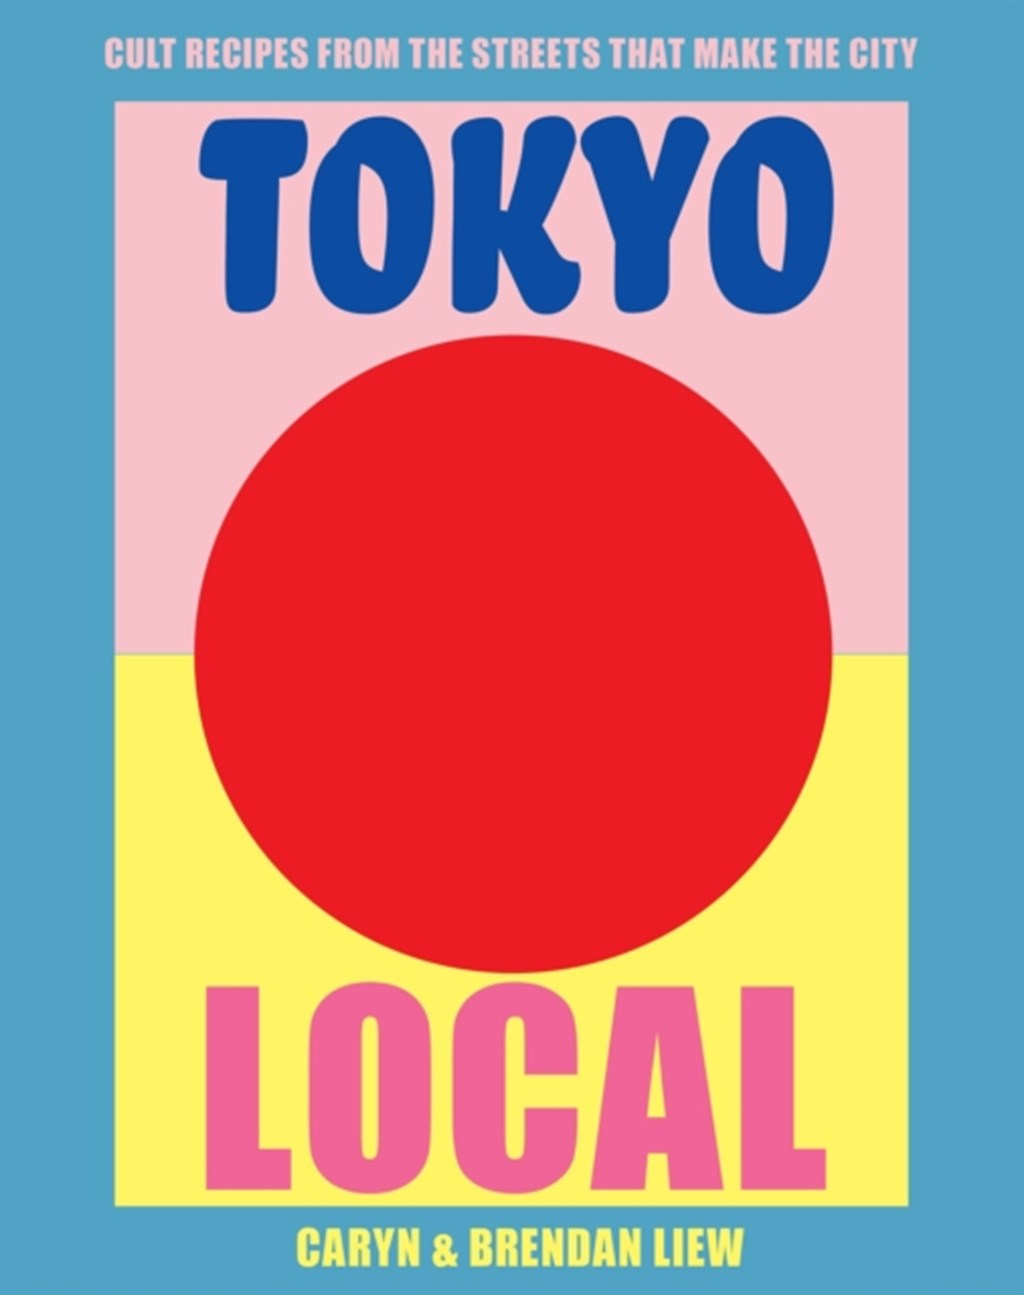 TOKYO LOCAL